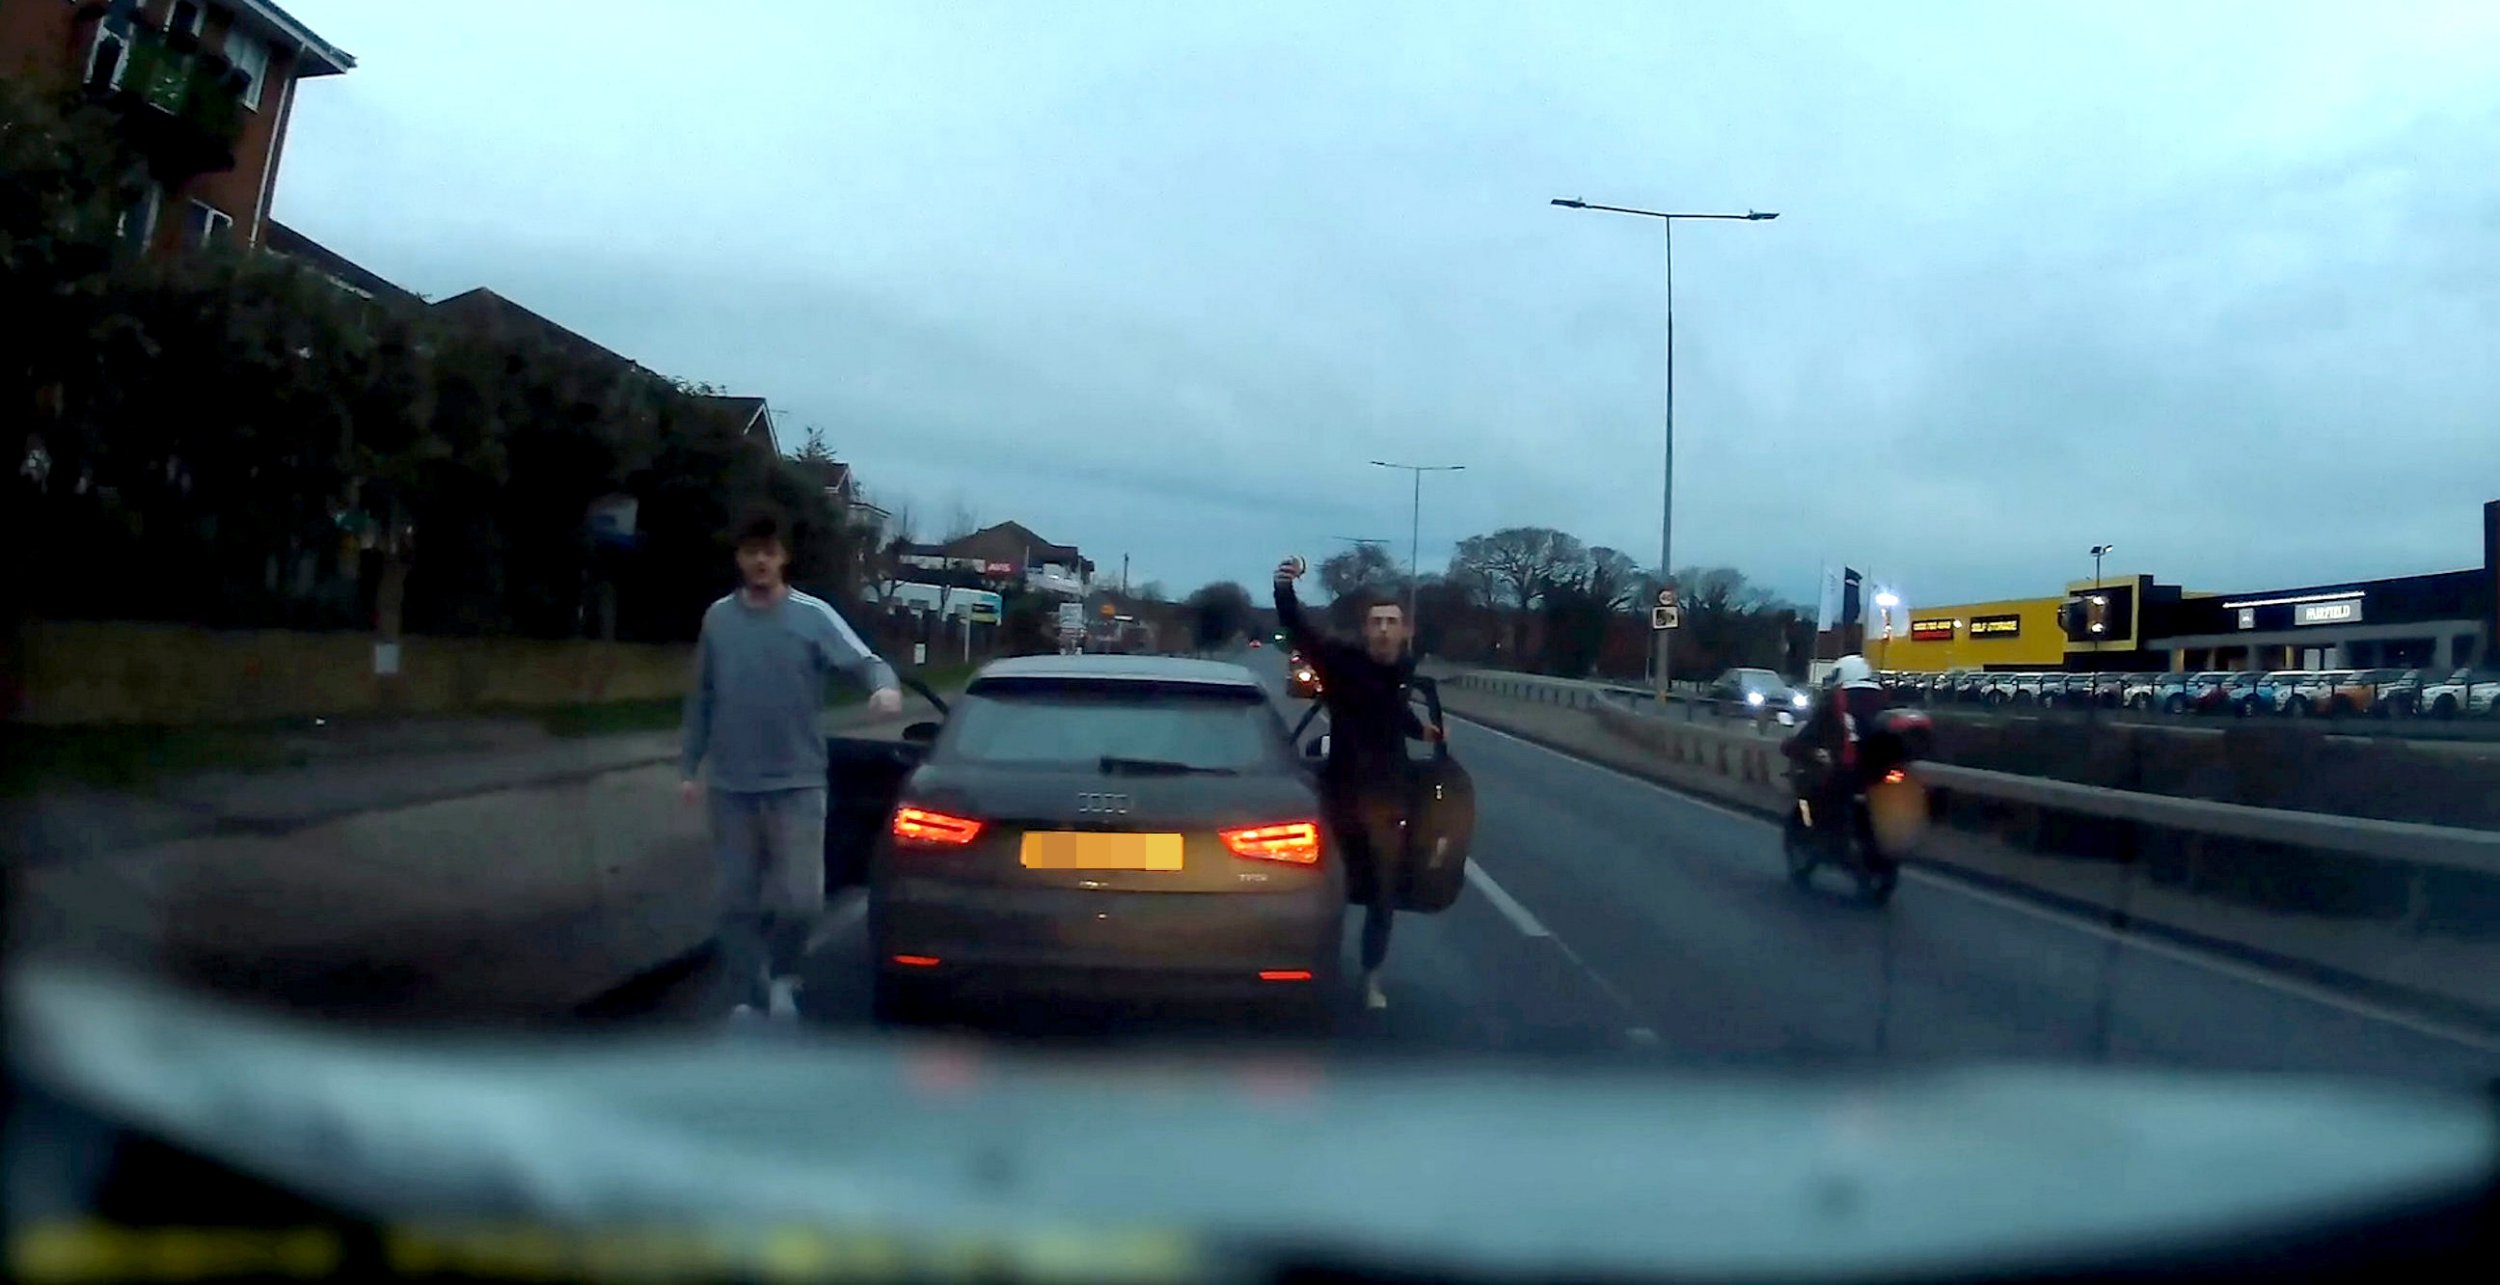 Video grab of the first stop performed by two yobs, one holding a CUPCAKE, in a stolen Audi on the A127 between the Bellhouse junction and the Rayleigh Weir, who continually threatened and chased a van driver on the morning of January 13.See SWNS story SWSCrage. Police are appealing for information after two thugs forced a driver to stop on the A127 and threatened him repeatedly.The incident happened on the A127 between the Bellhouse junction and the Rayleigh Weir roundabout at about 8.10am on Sunday, January 13.In a shocking dash cam clip, the black Audi can be seen to repeatedly force the driver to stop before he gets out of the car with his passenger and threaten the driver who is then forced to drive round them.